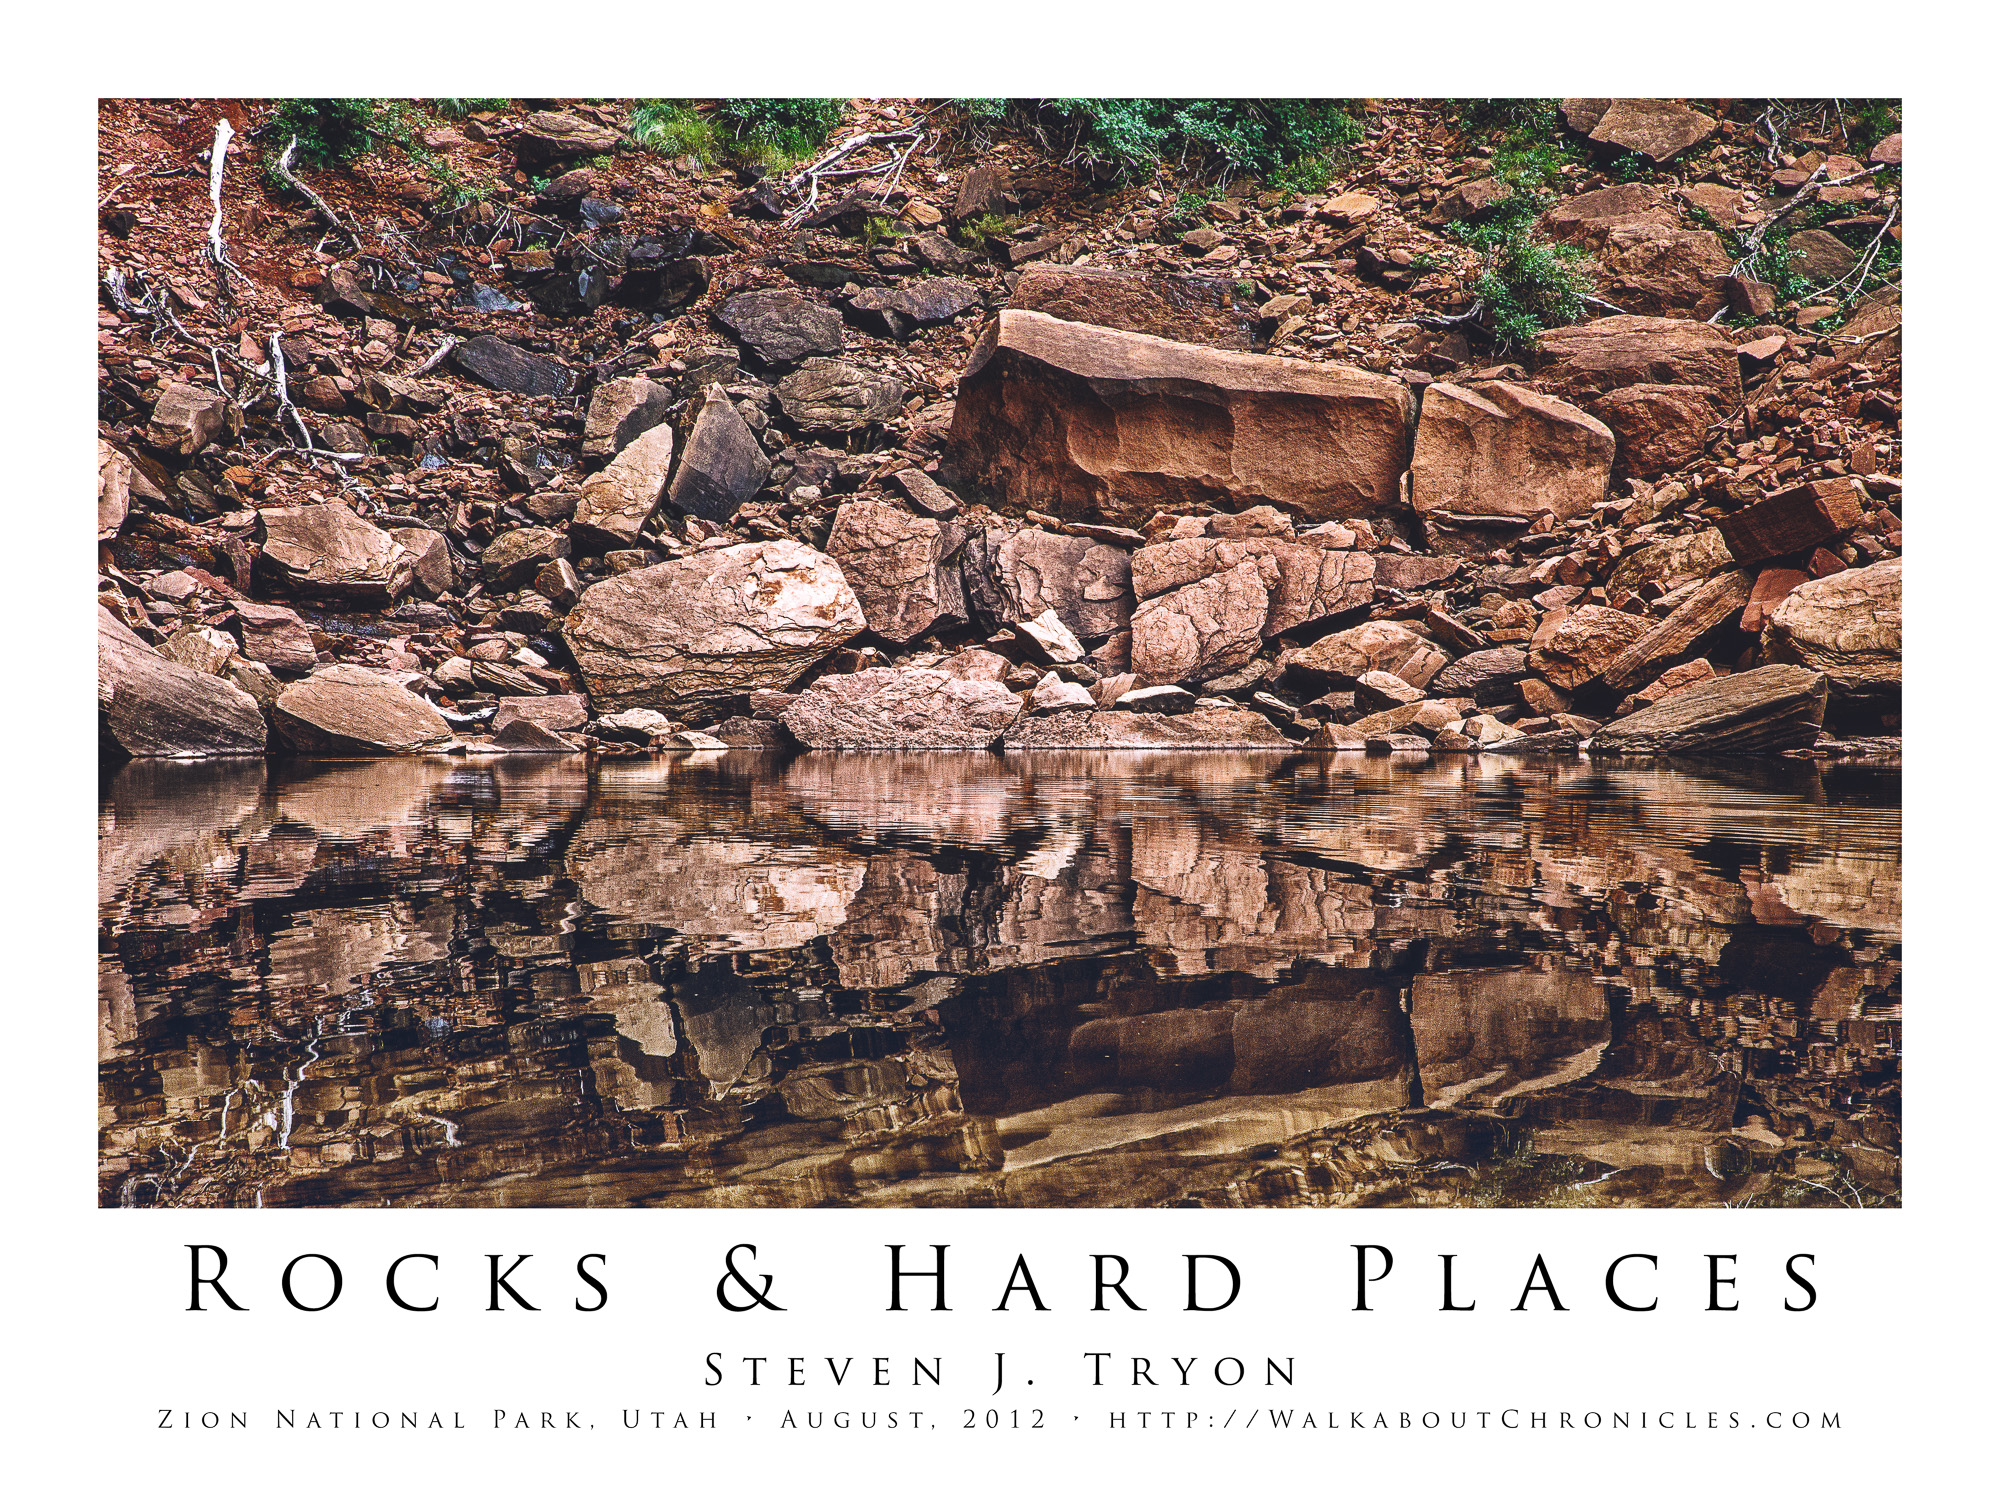 Rocks & Hard Places